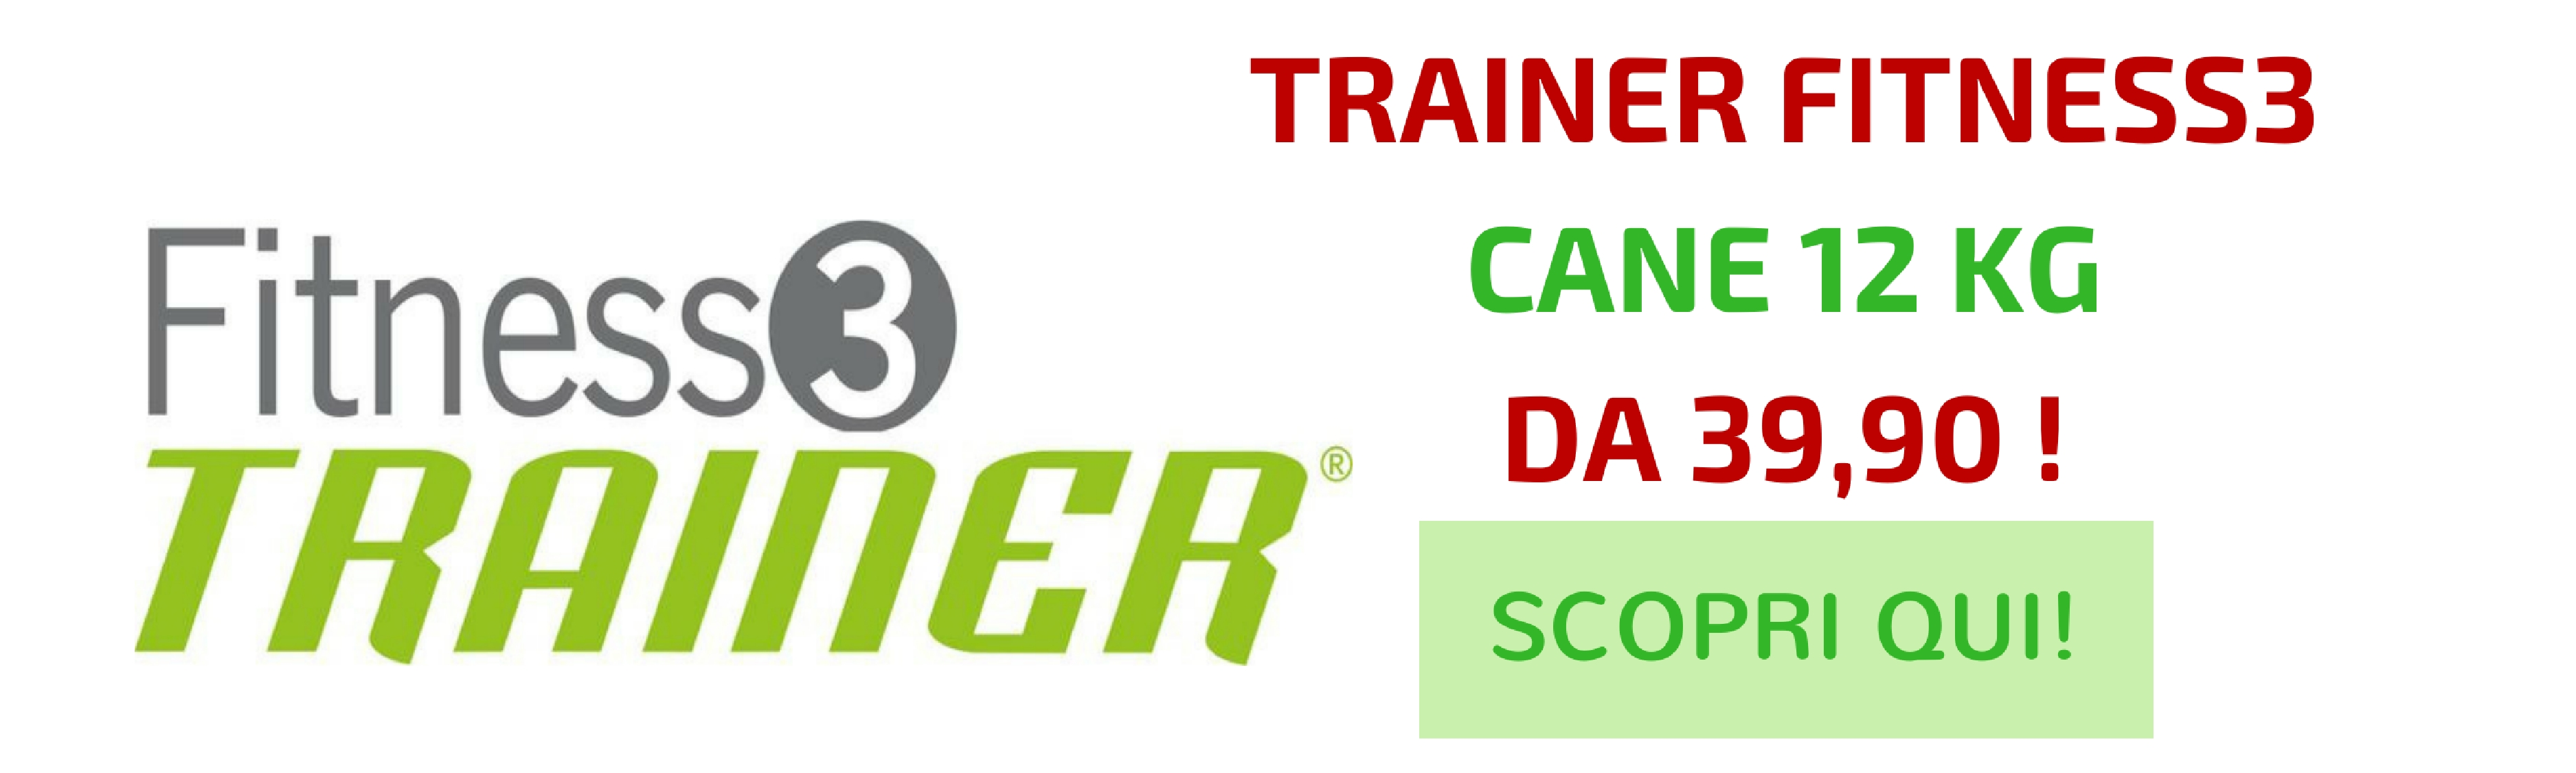 Trainer Fitness3 cane offerta